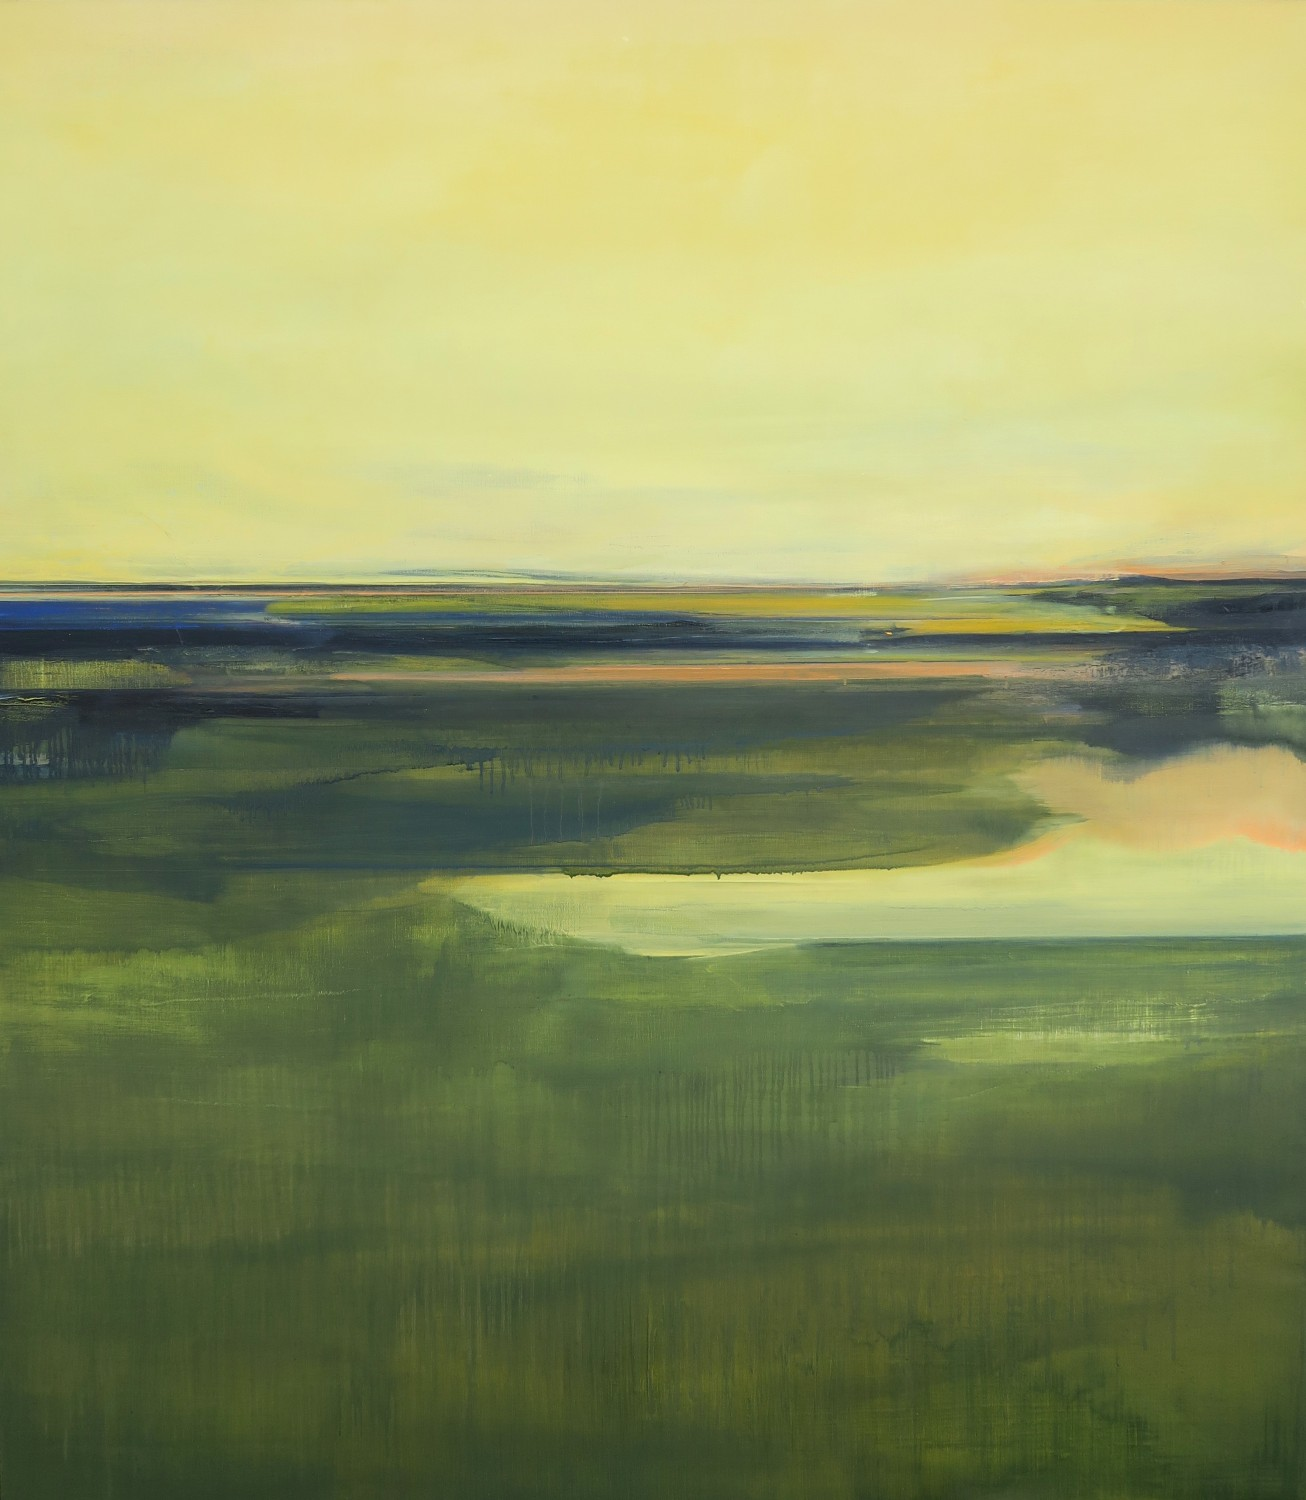 DELAYED (2016), Emma Hartman, oil on canvas, 160x140cm